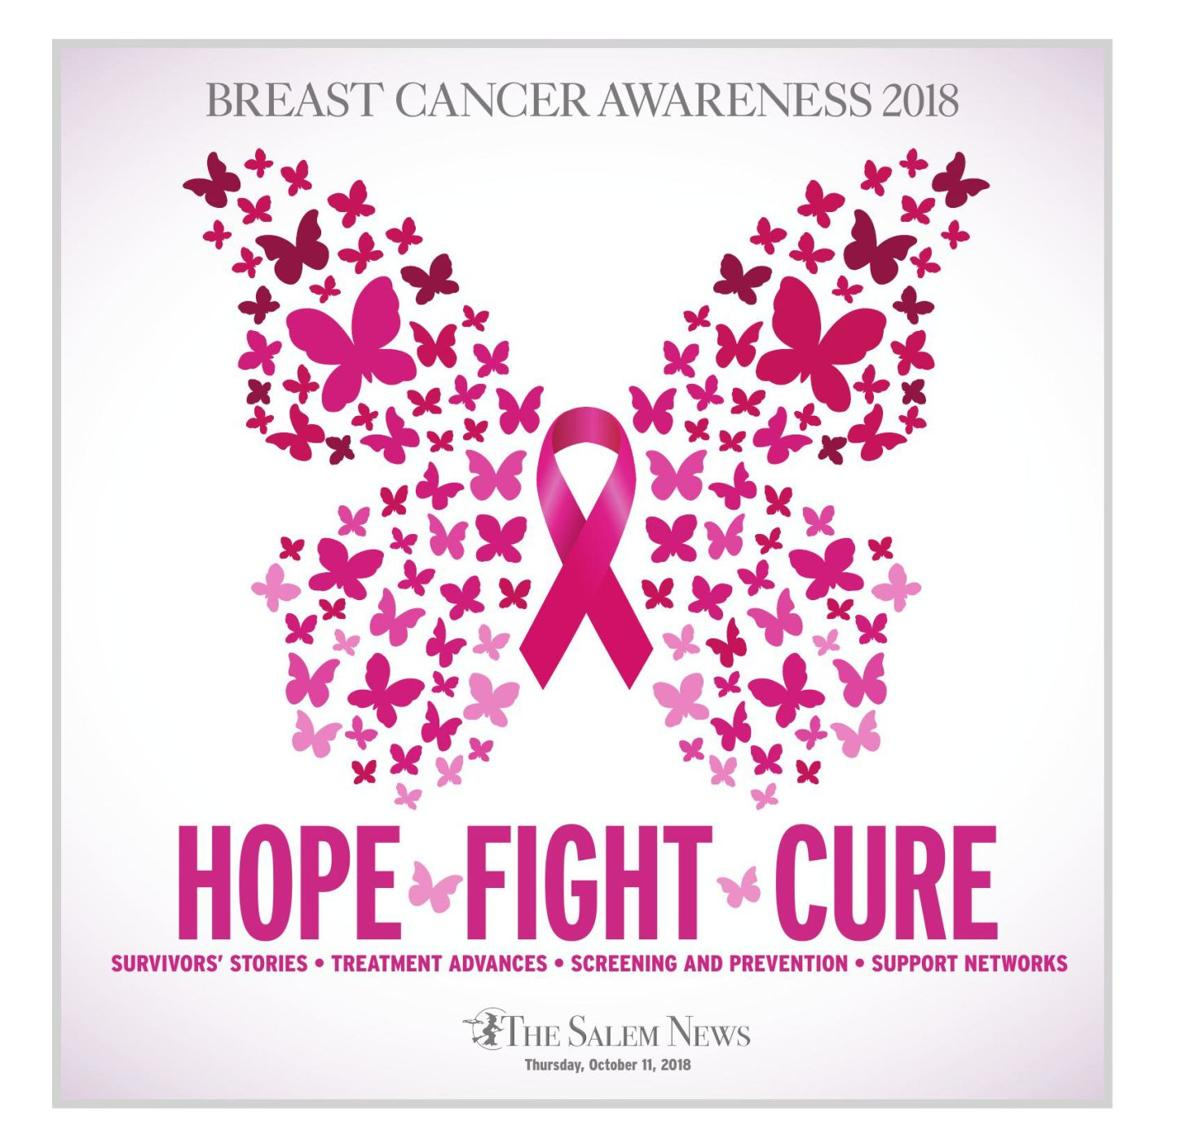 Breast Cancer Awareness 2018